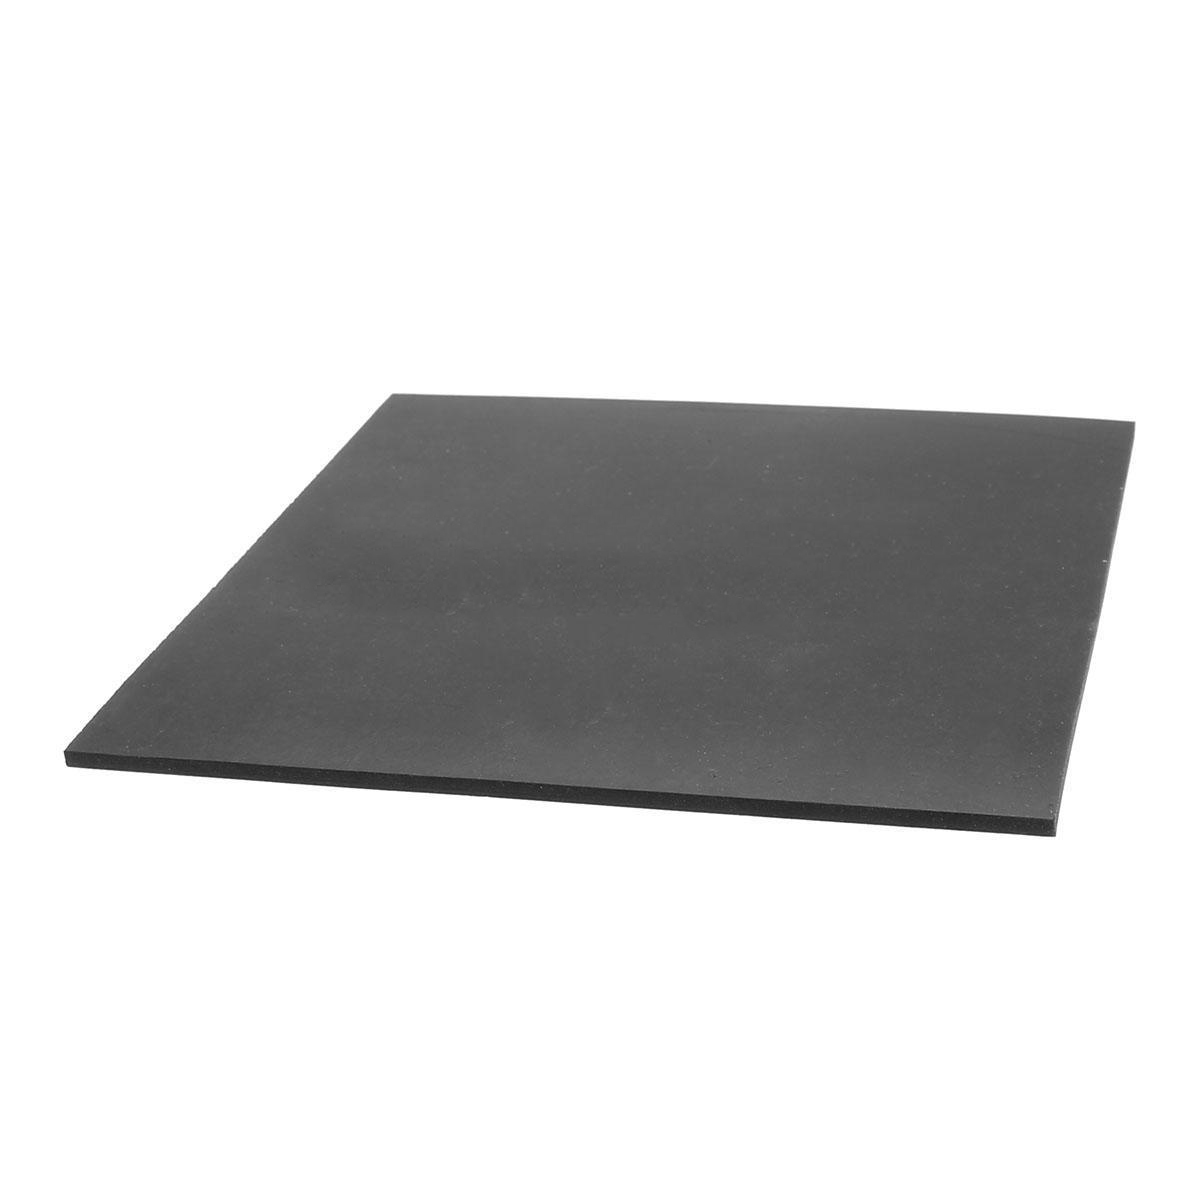 1pc Black Square Rubber Sheet Chemical Resistance High Temperature Rubber Plate 152*152*3mm best